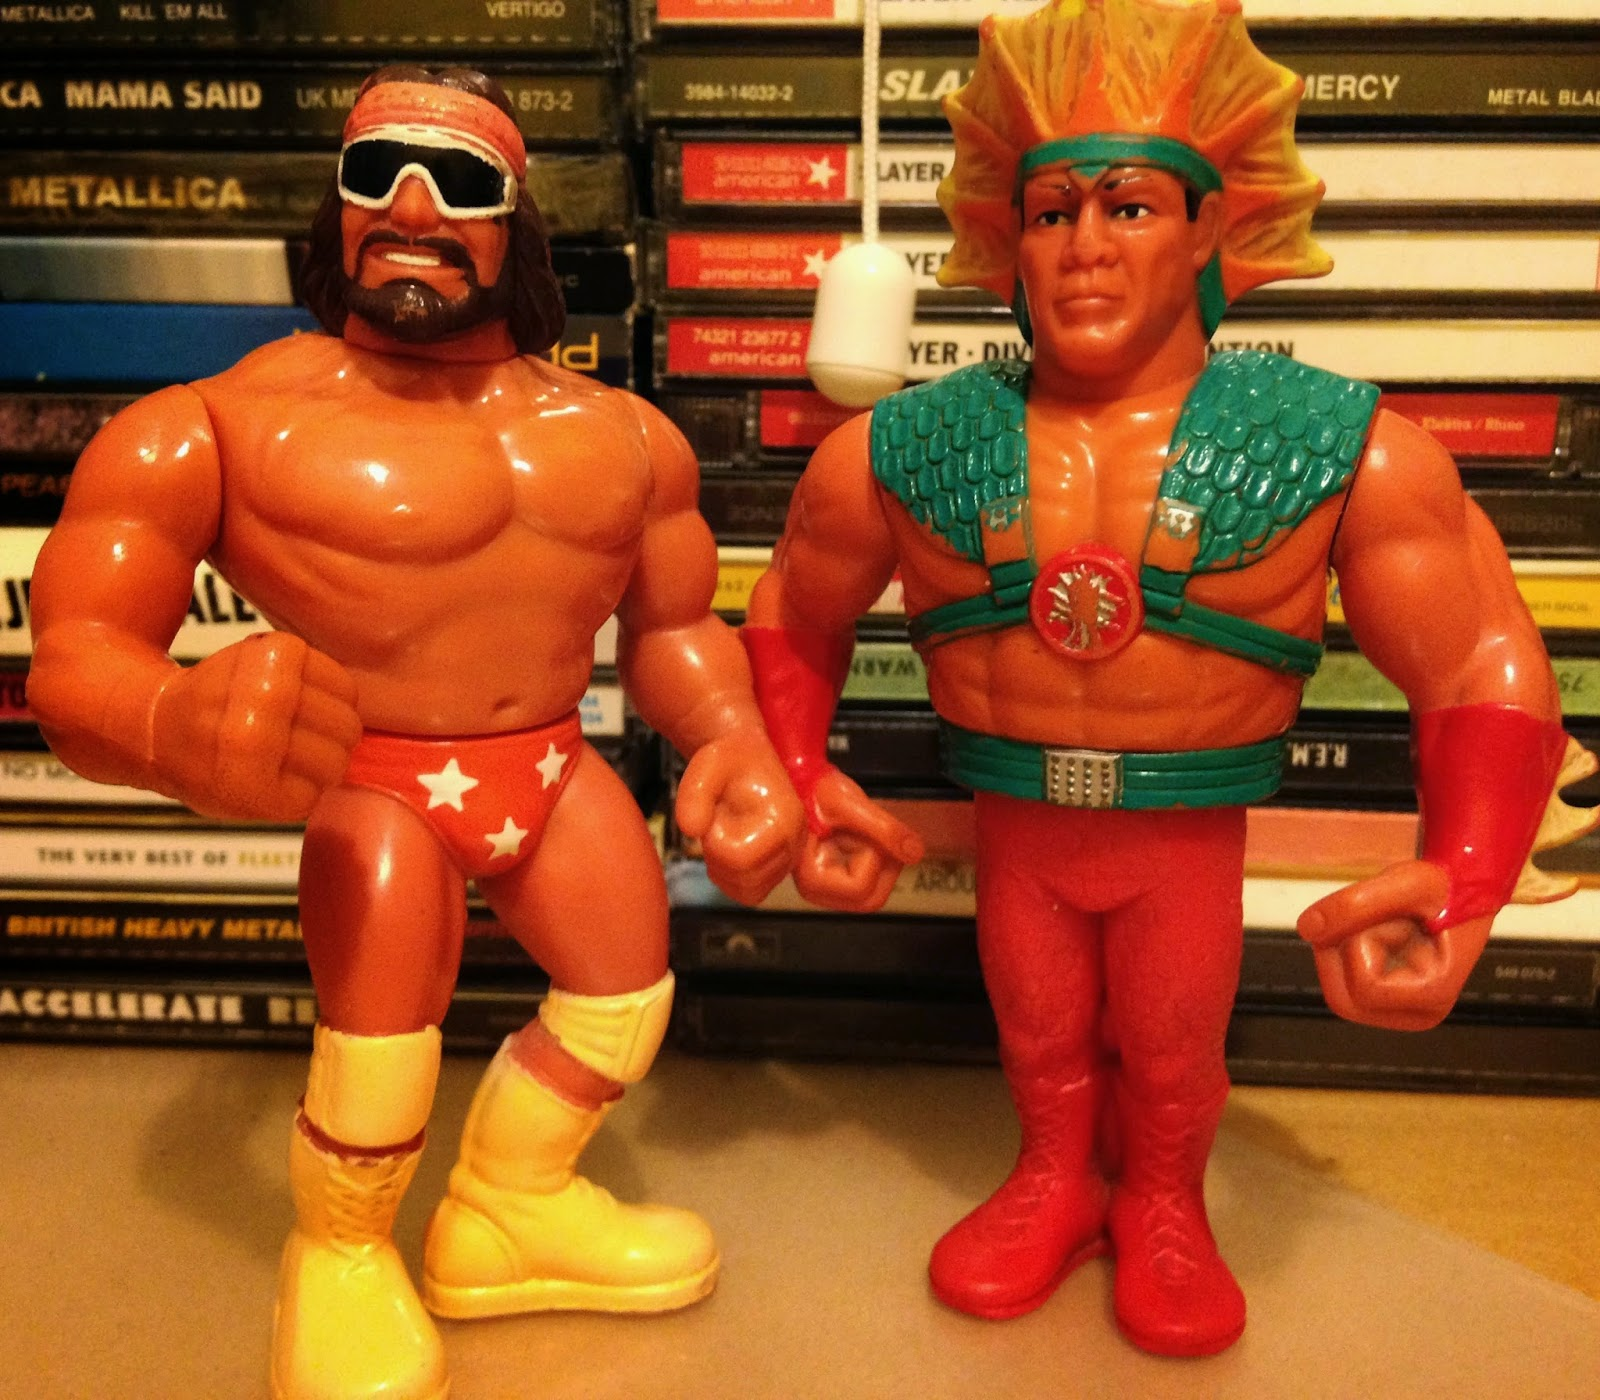 WWF Hasbro Figures - Macho Man Randy Savage vs. Ricky 'The Dragon' Steamboat - Wrestlemania 3